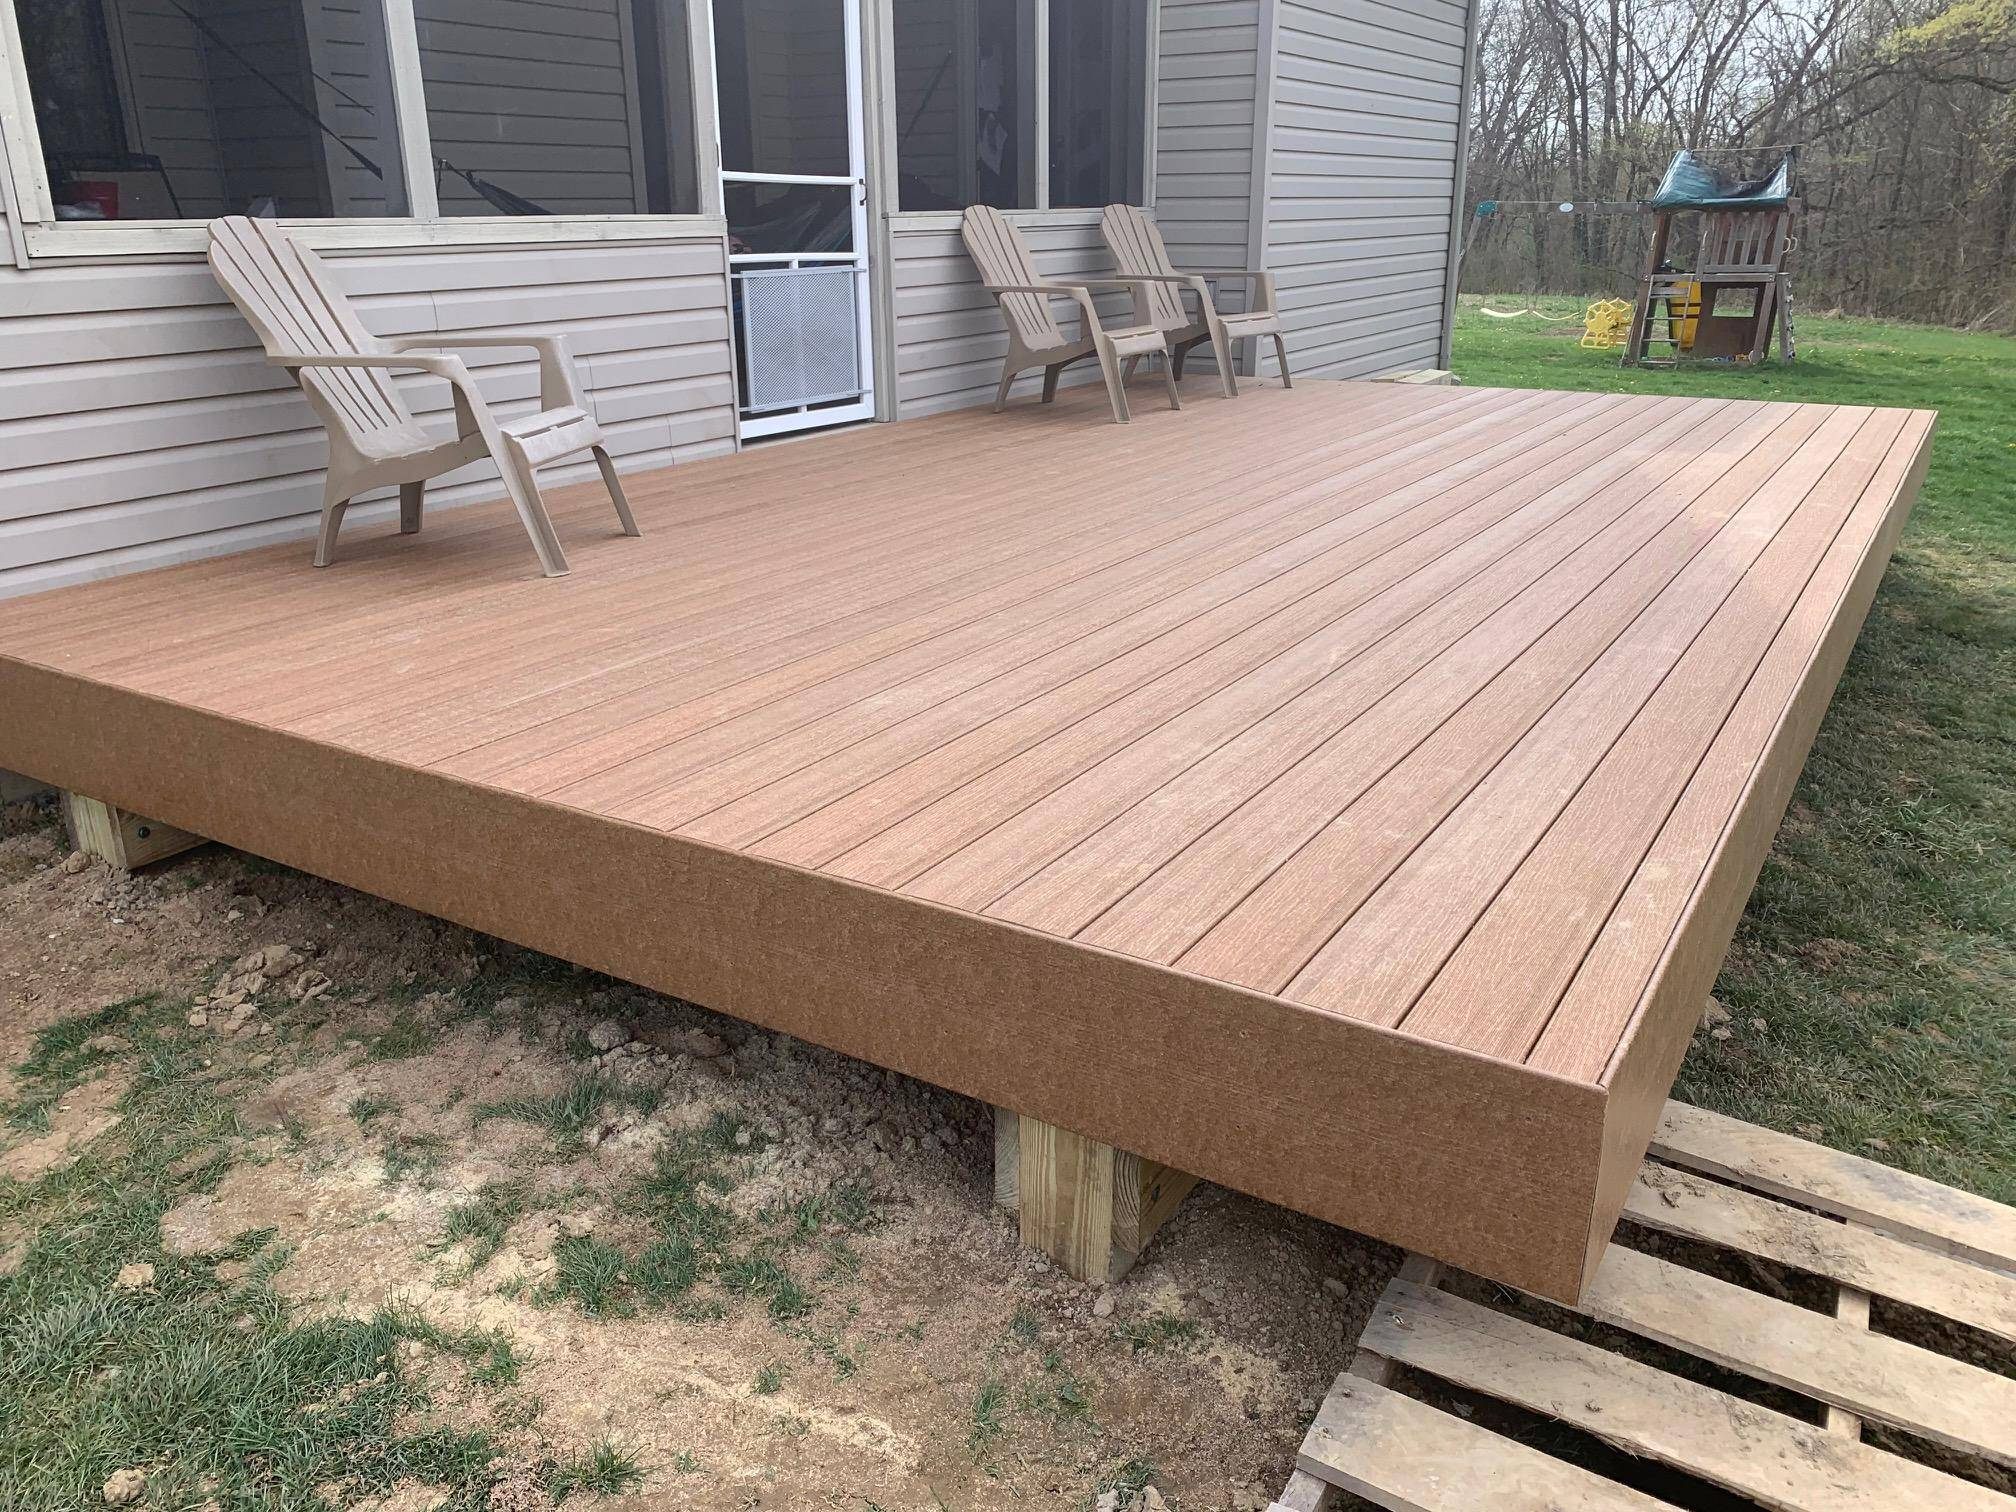 12 x 20 Composite Deck Construction – UltraDeck Rustic Cedar – Edgerton, Ohio